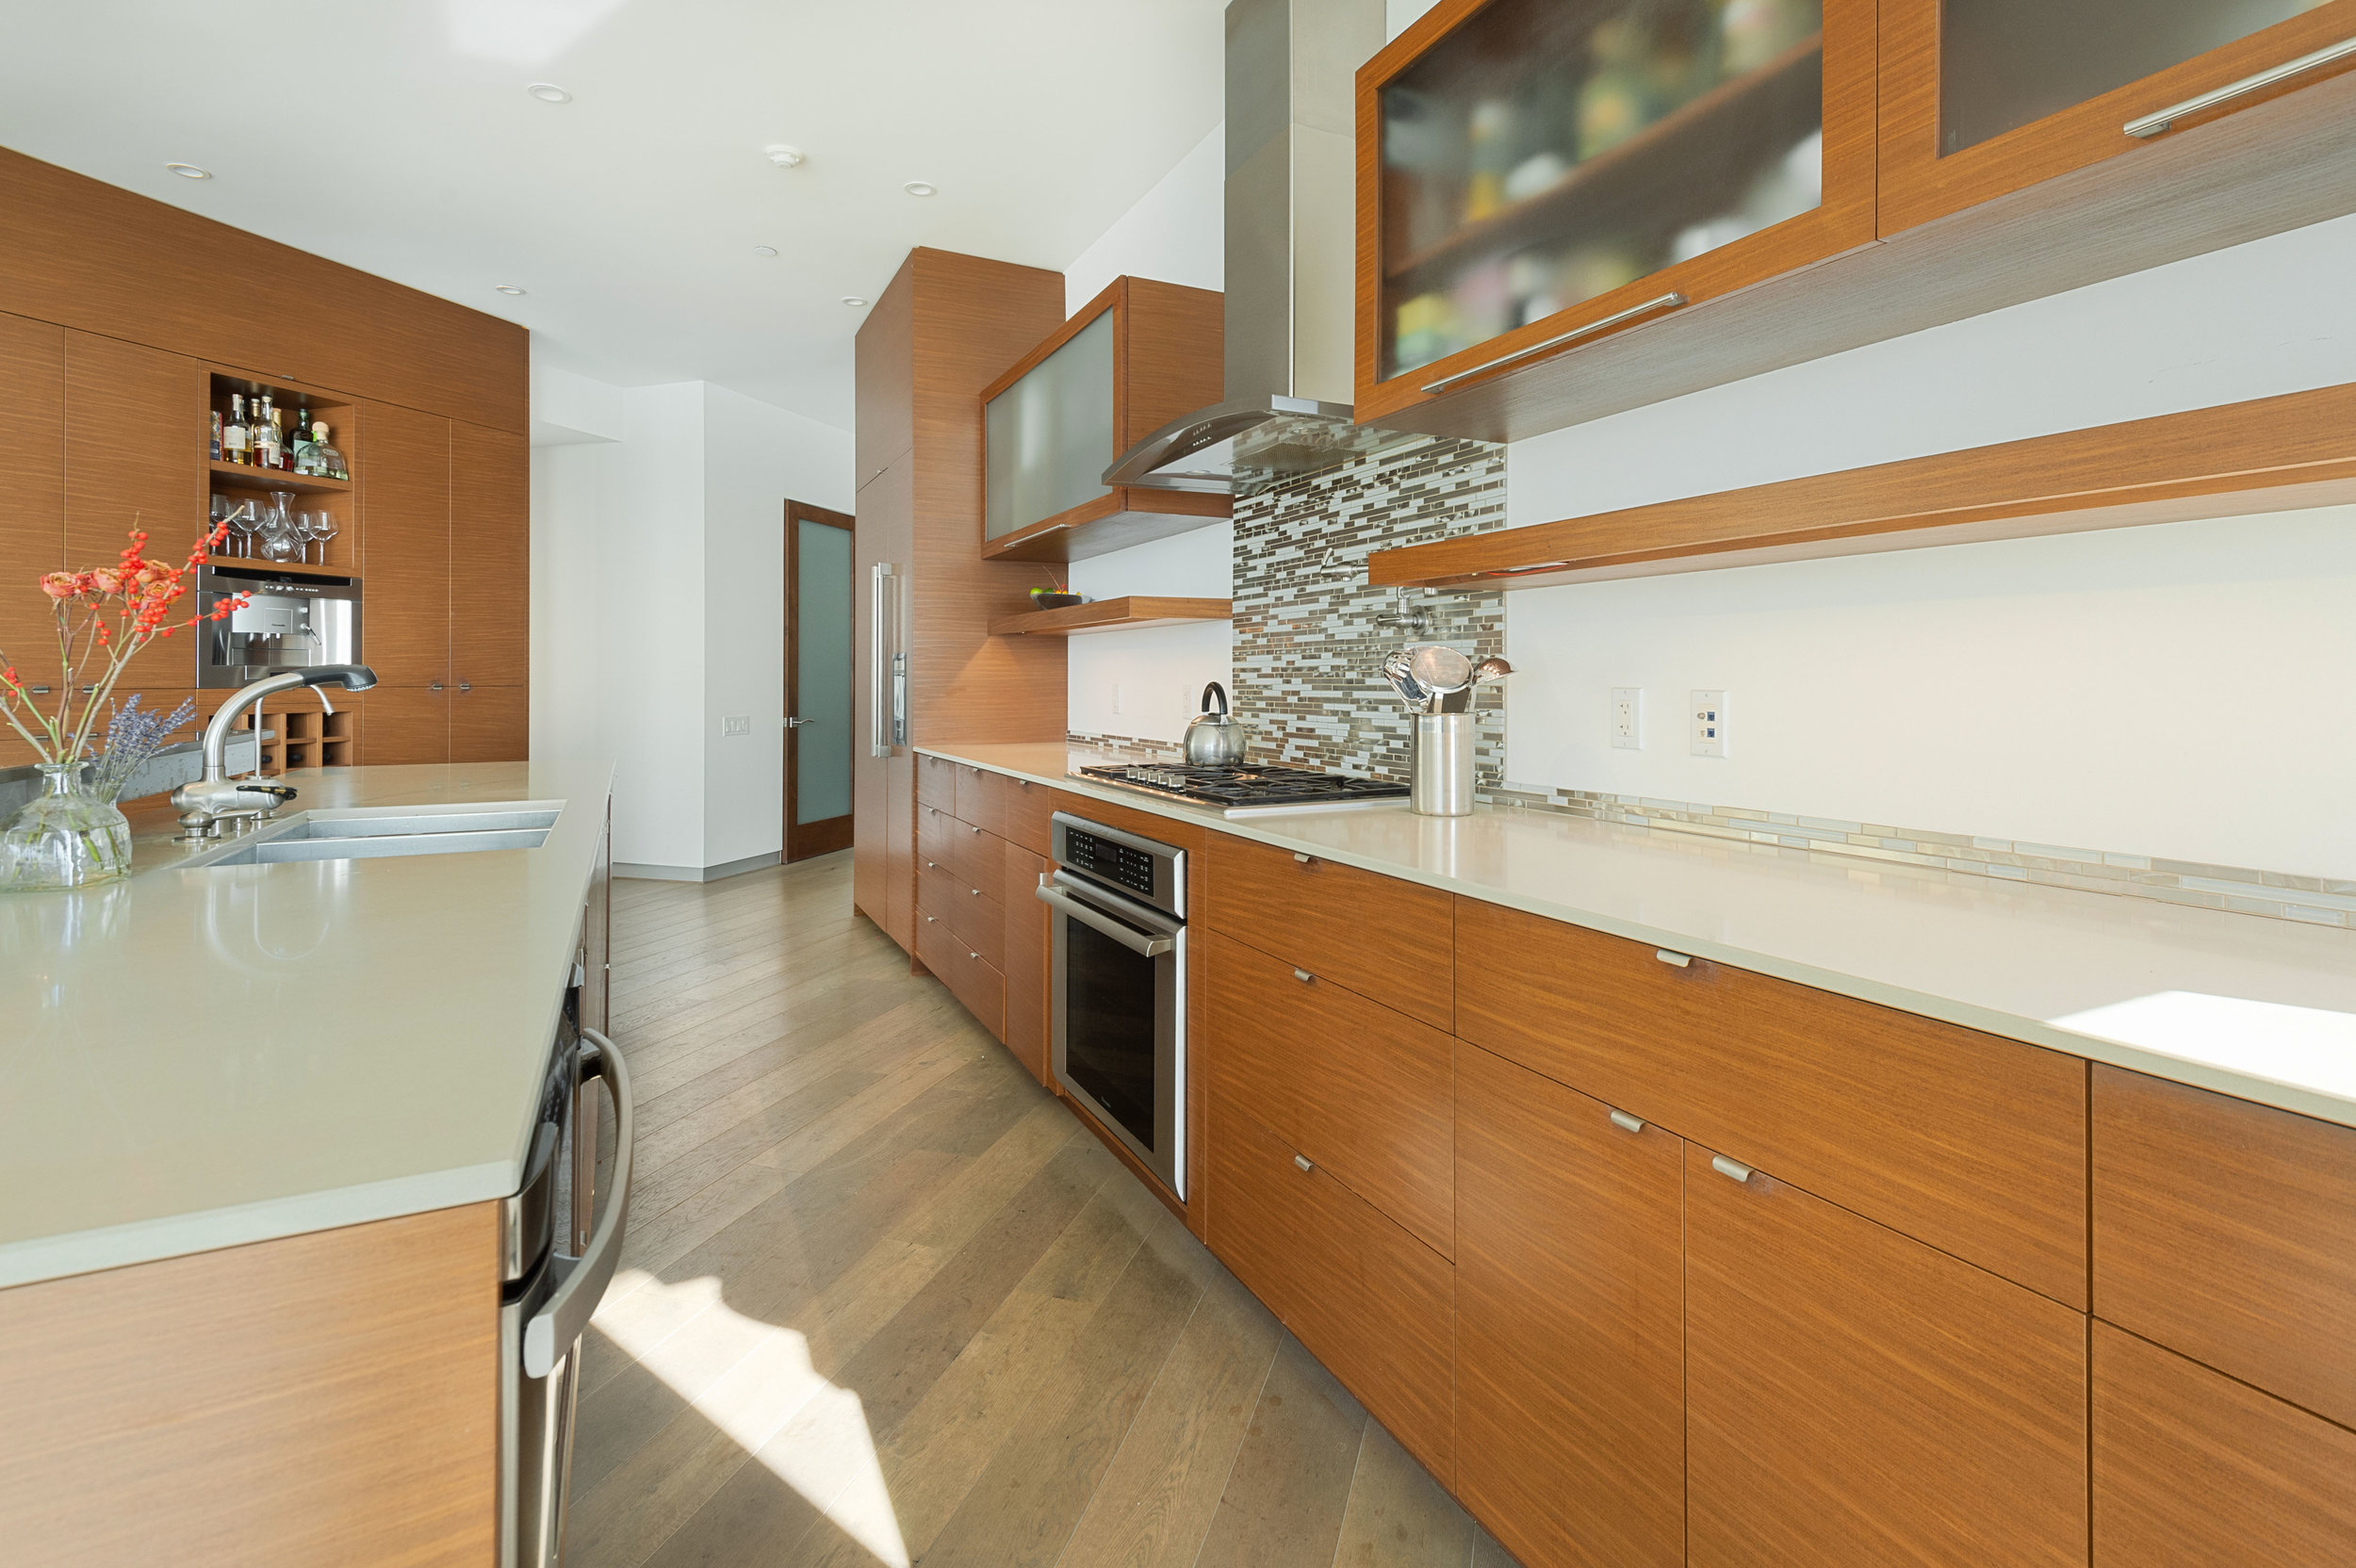 Copy of 003.3 Kitchen 20729 Eaglepass For Sale Lease The Malibu Life Team Luxury Real Estate.jpg